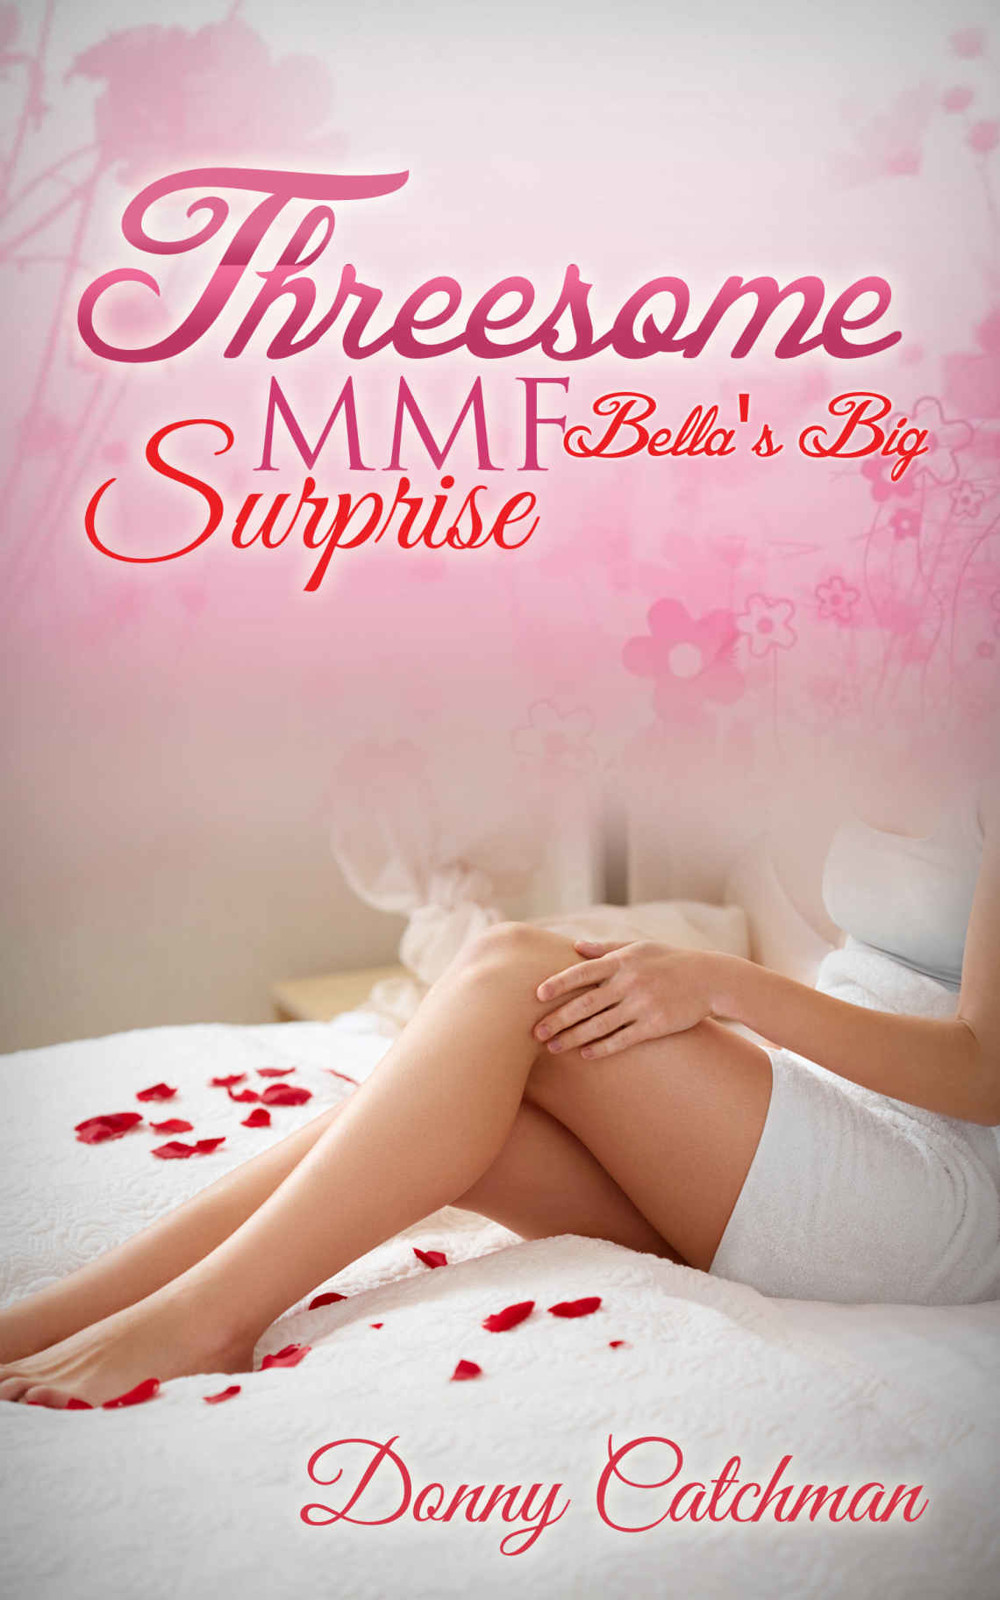 read free romance mmf: bella's big surprise (threesome